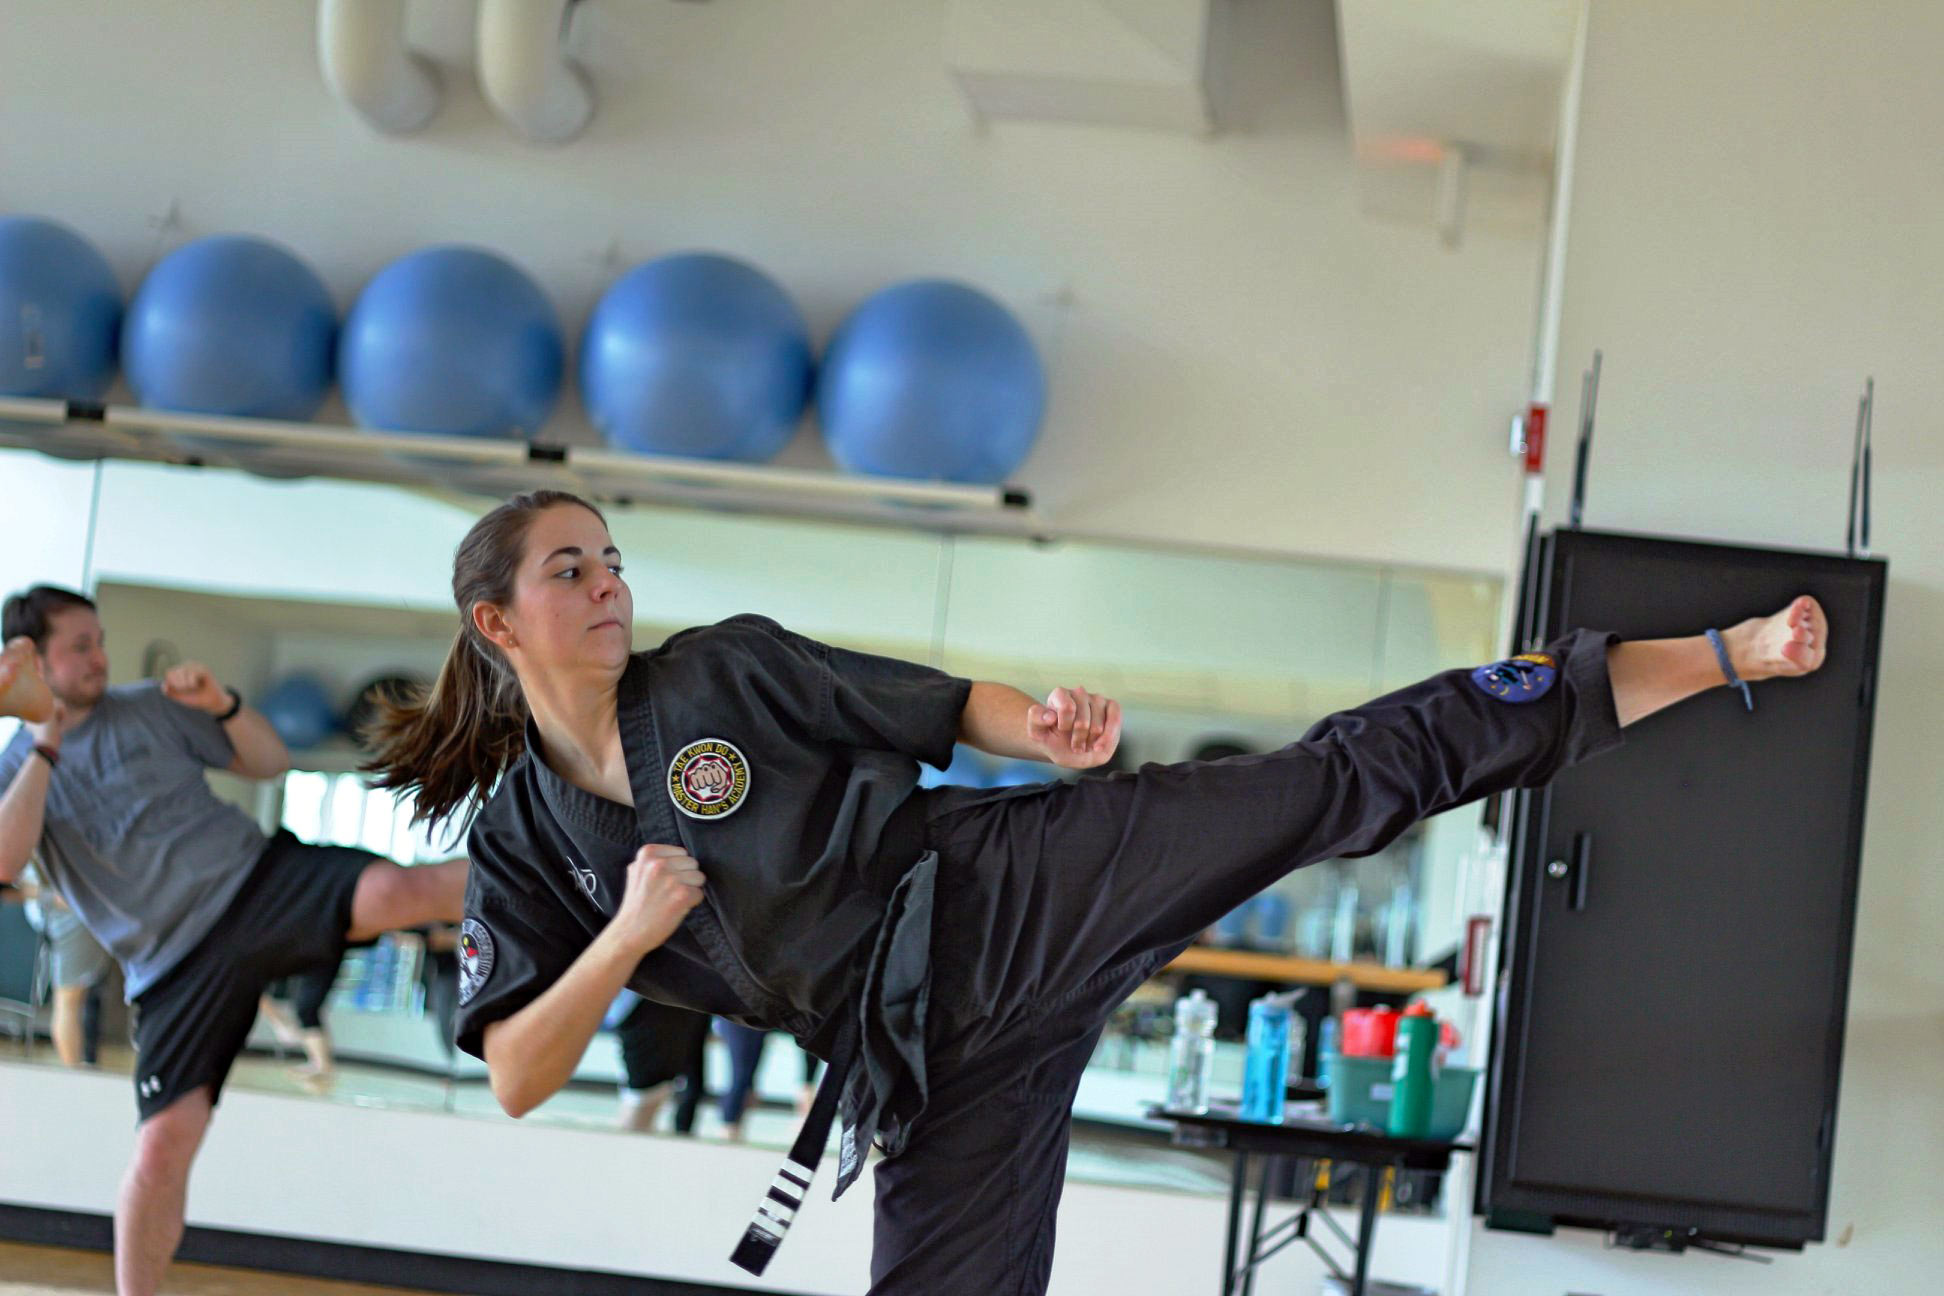 Martial Arts Class at Truman's Student Recreation Center